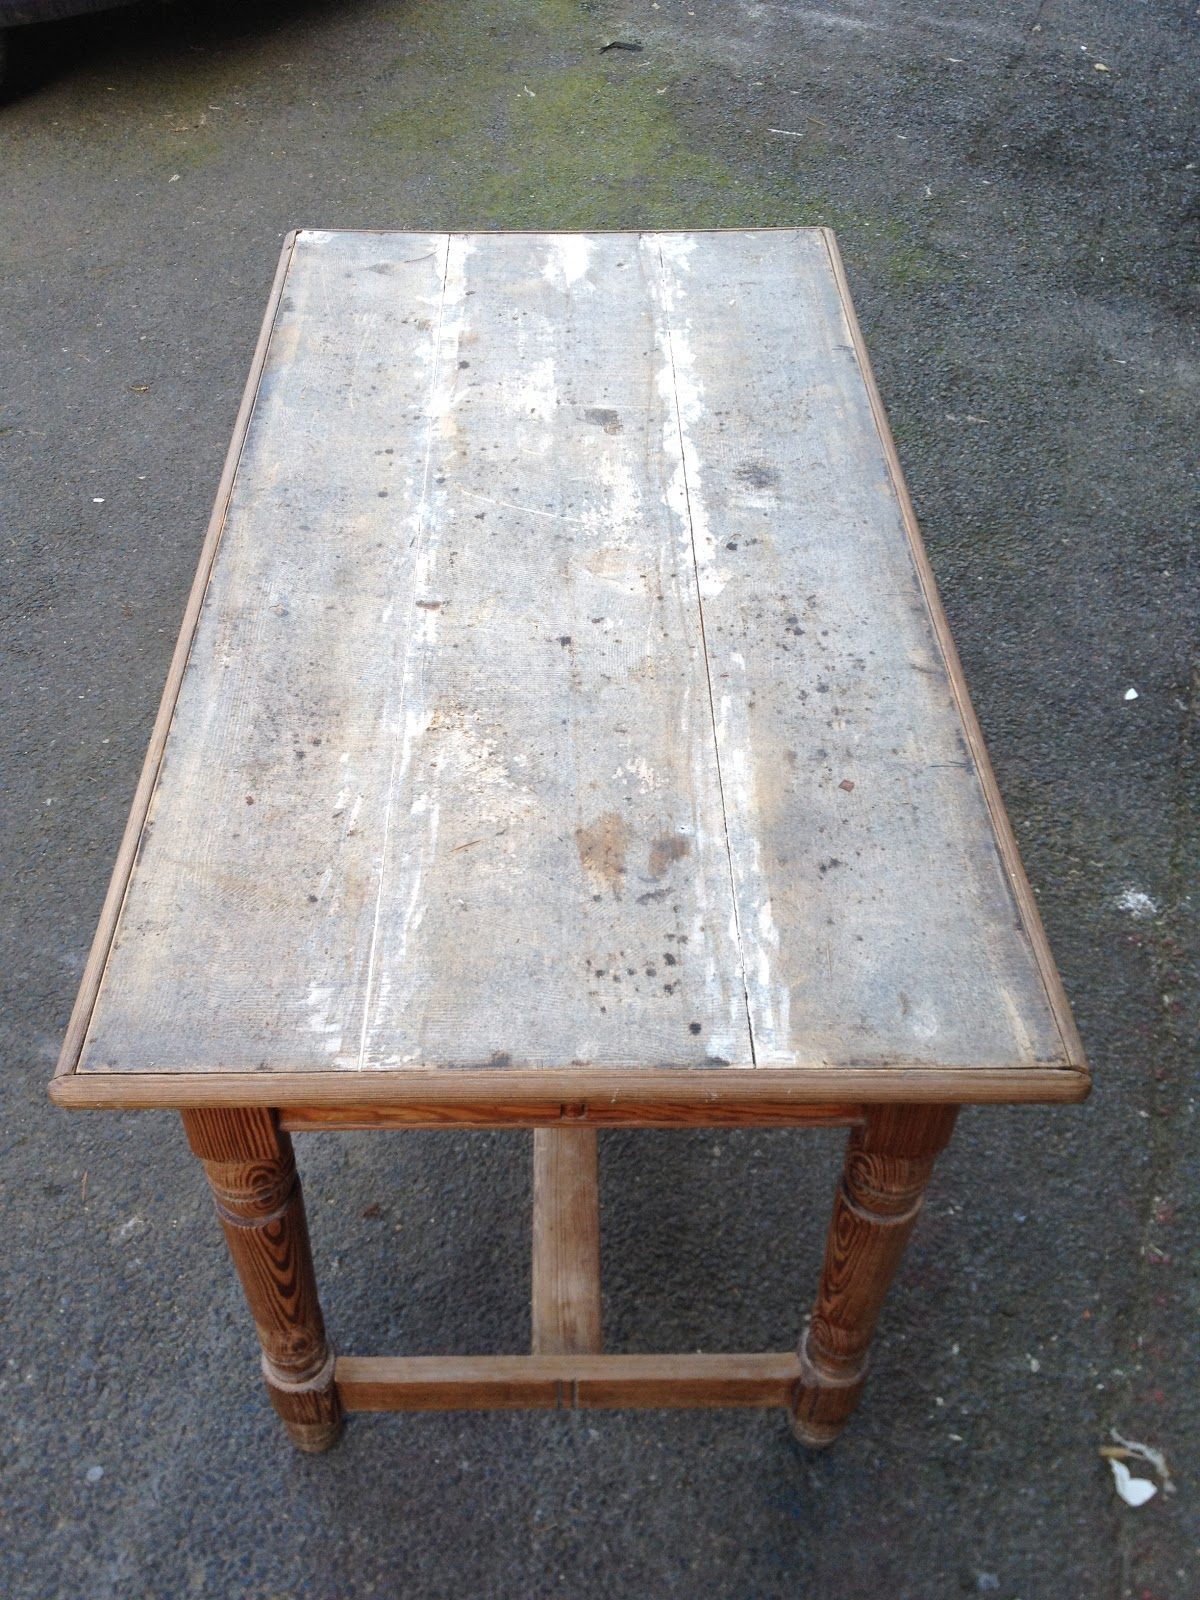 Recouvrir table basse zinc - Recouvrir table ...